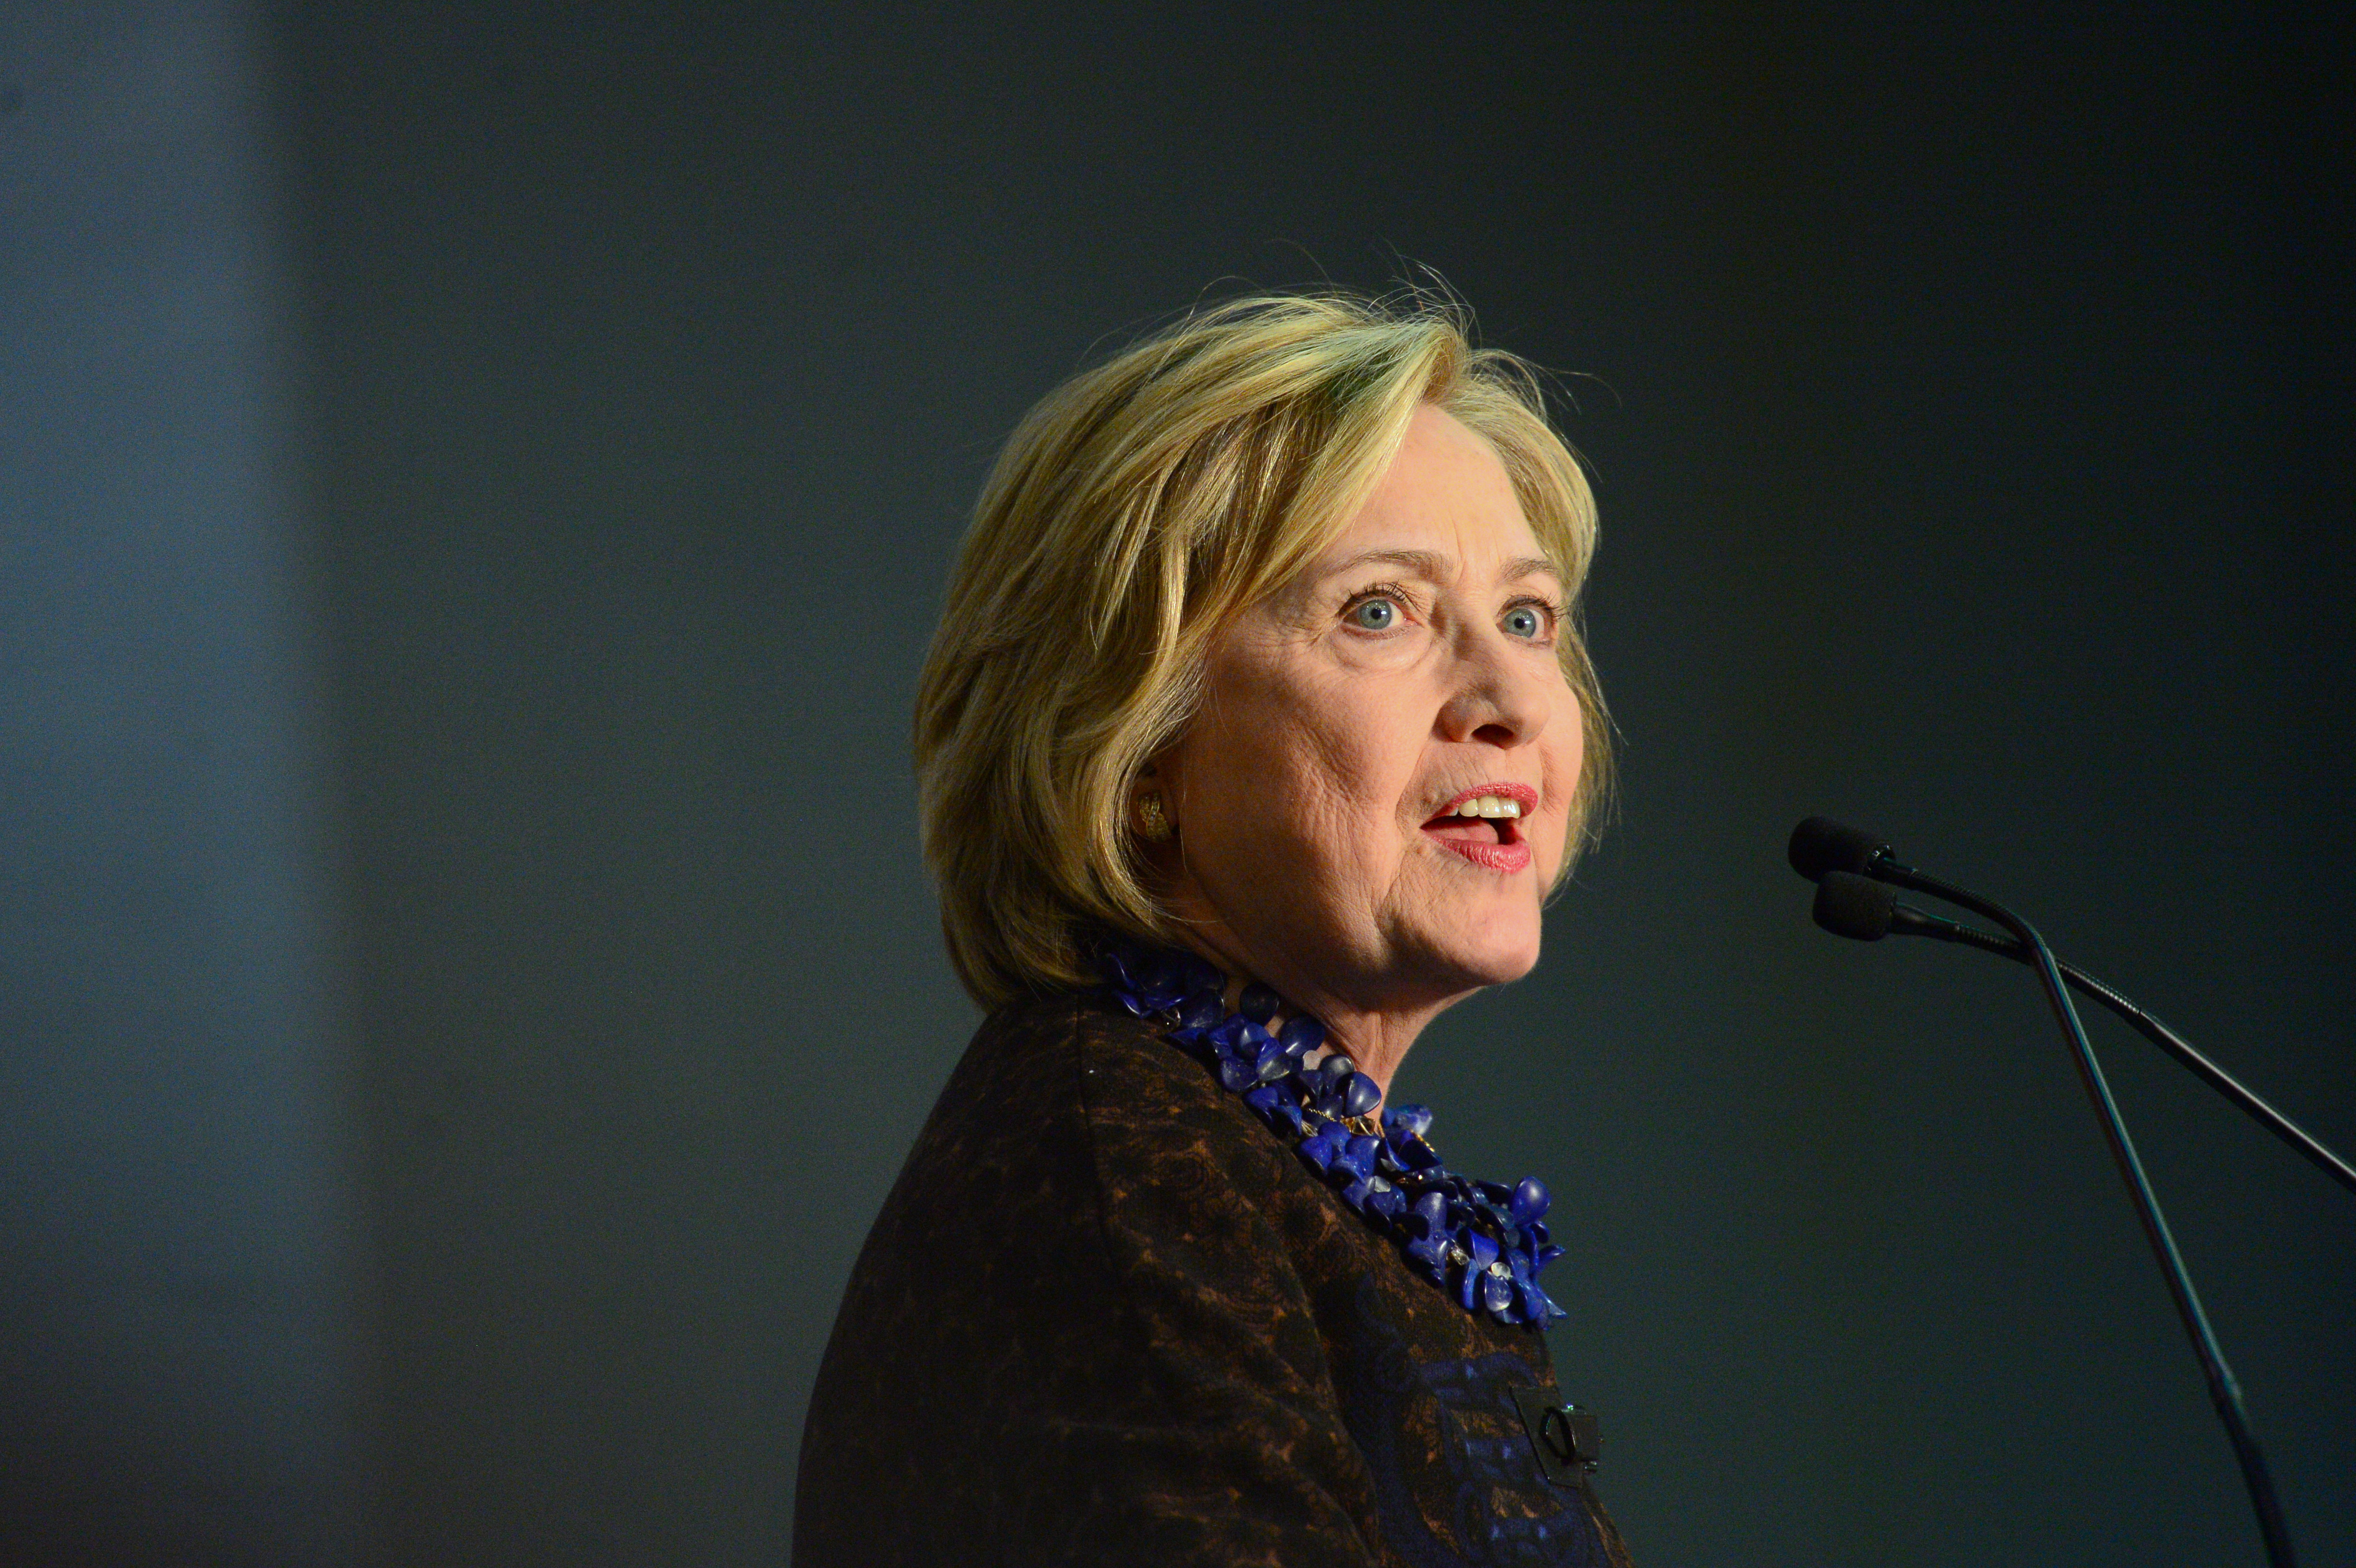 Democratic Presidential candidate Hillary Clinton Speaks to Supporters during the  African Americans for Hillary Grassroots Organizing Meeting with Hillary Clinton  event at Clark Atlanta University Gymnasium on October 30, 2015 in Atlanta, Georgia.